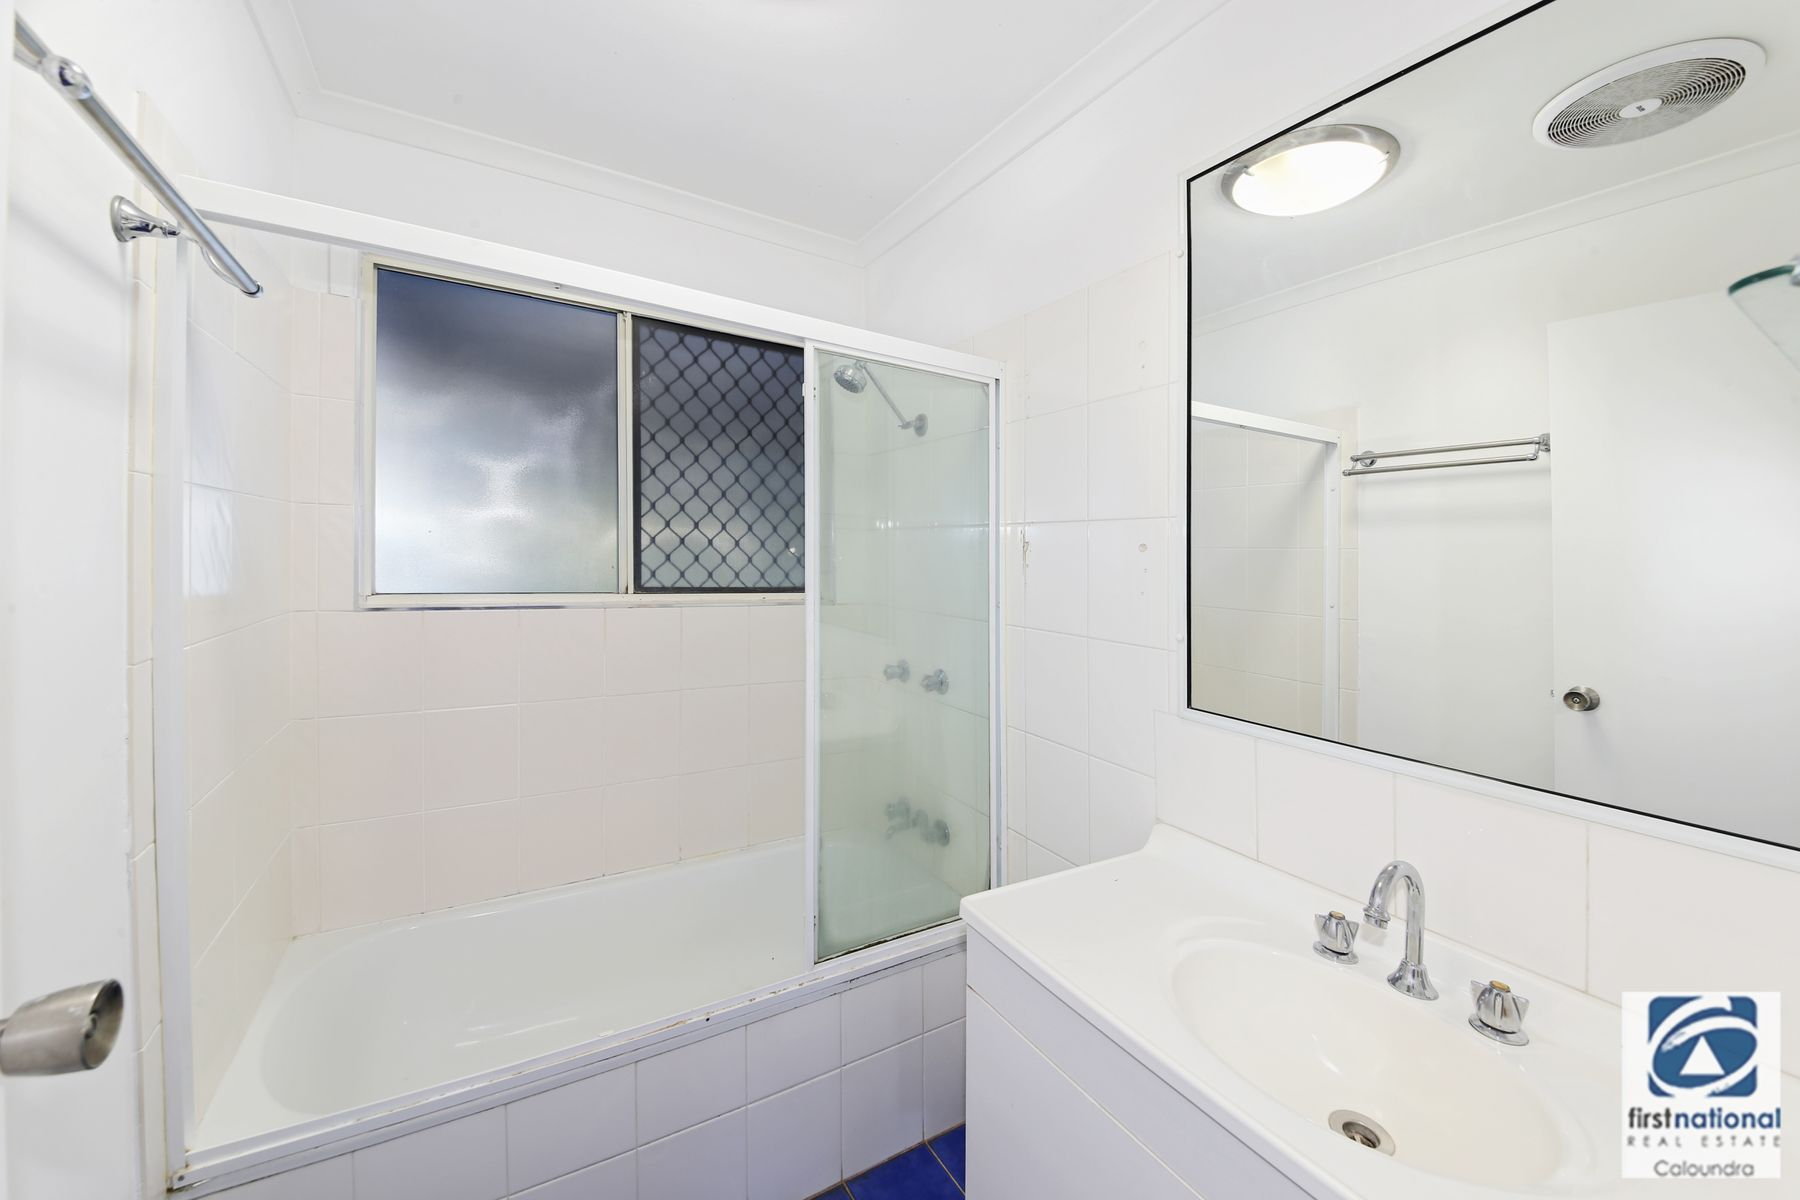 510 Nicklin Way, Wurtulla, QLD 4575